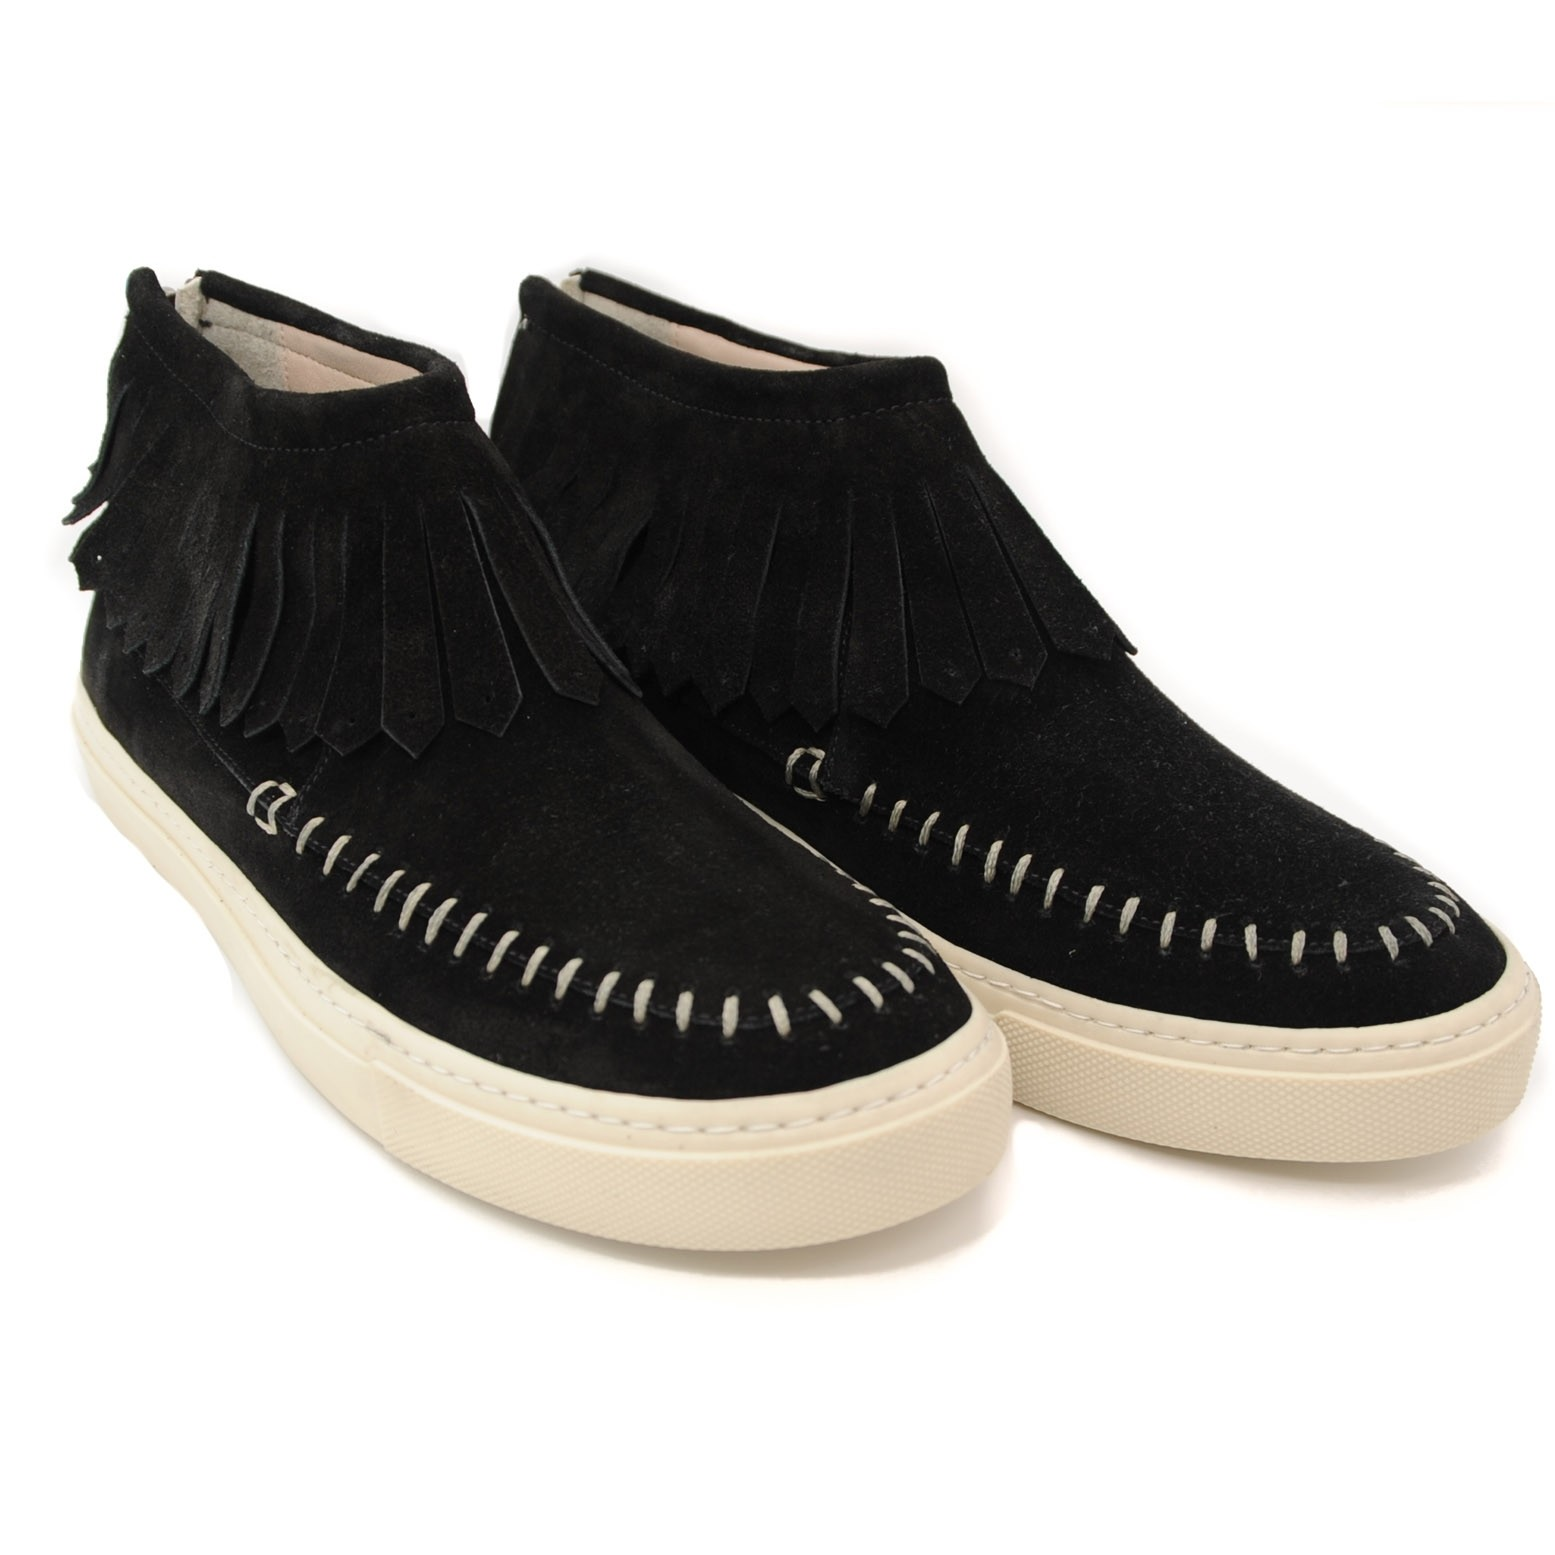 Suede Leather Casual Fashion Pumps with Back Zip and Flat White Rubber Soles - Black